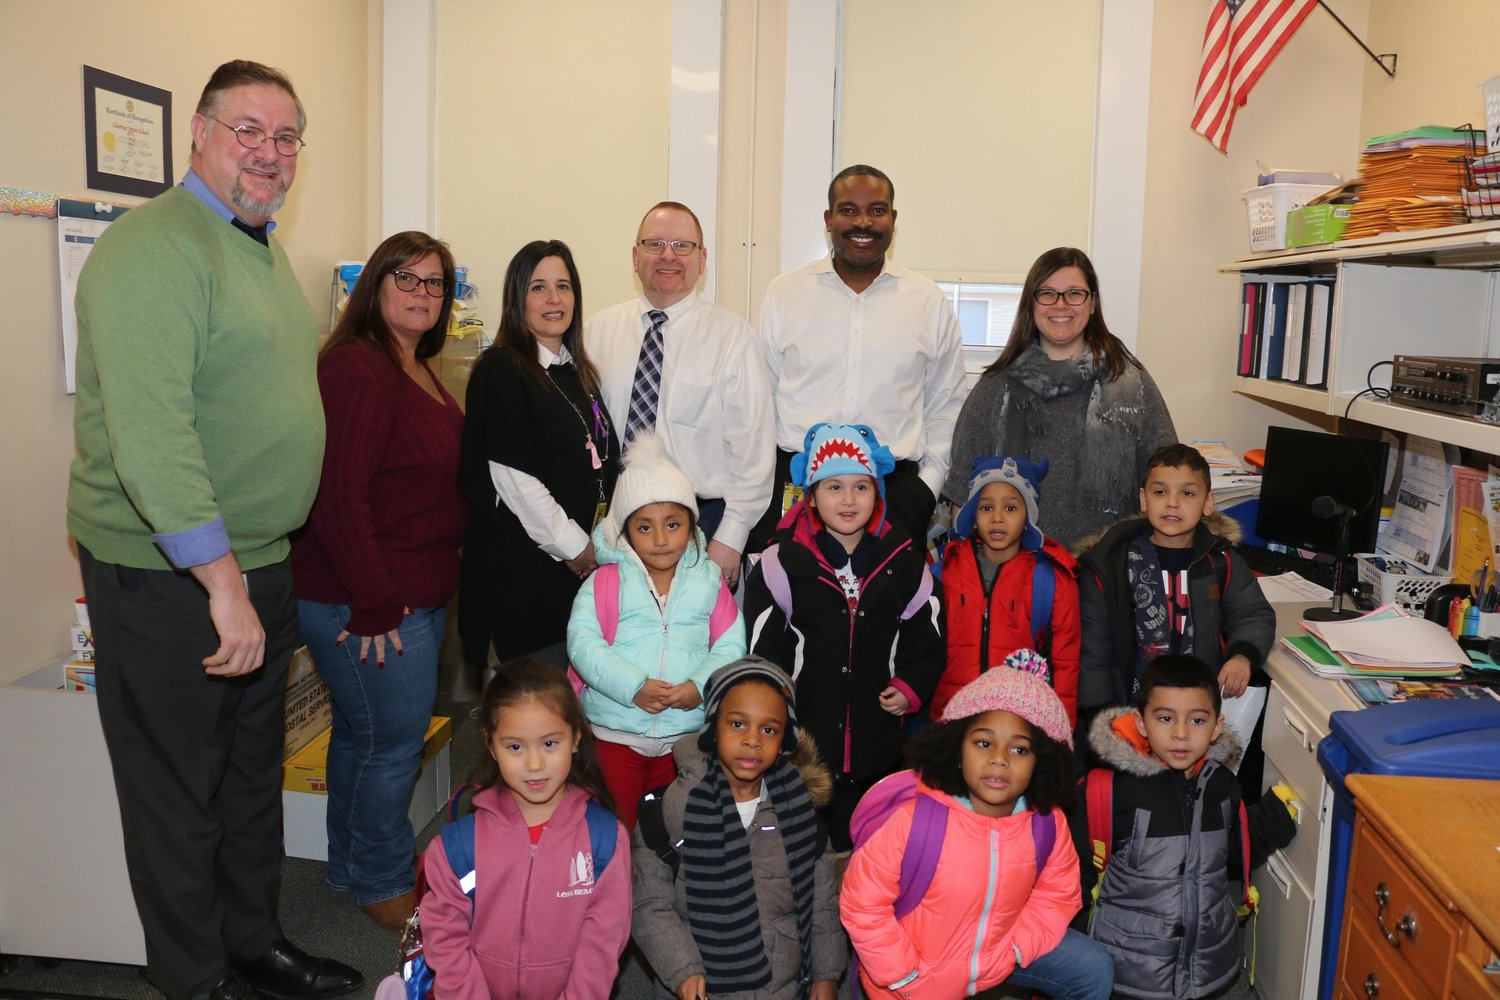 West Hempstead district officials and Chestnut Street School students celebrated the building's 106th anniversary on Jan. 14.